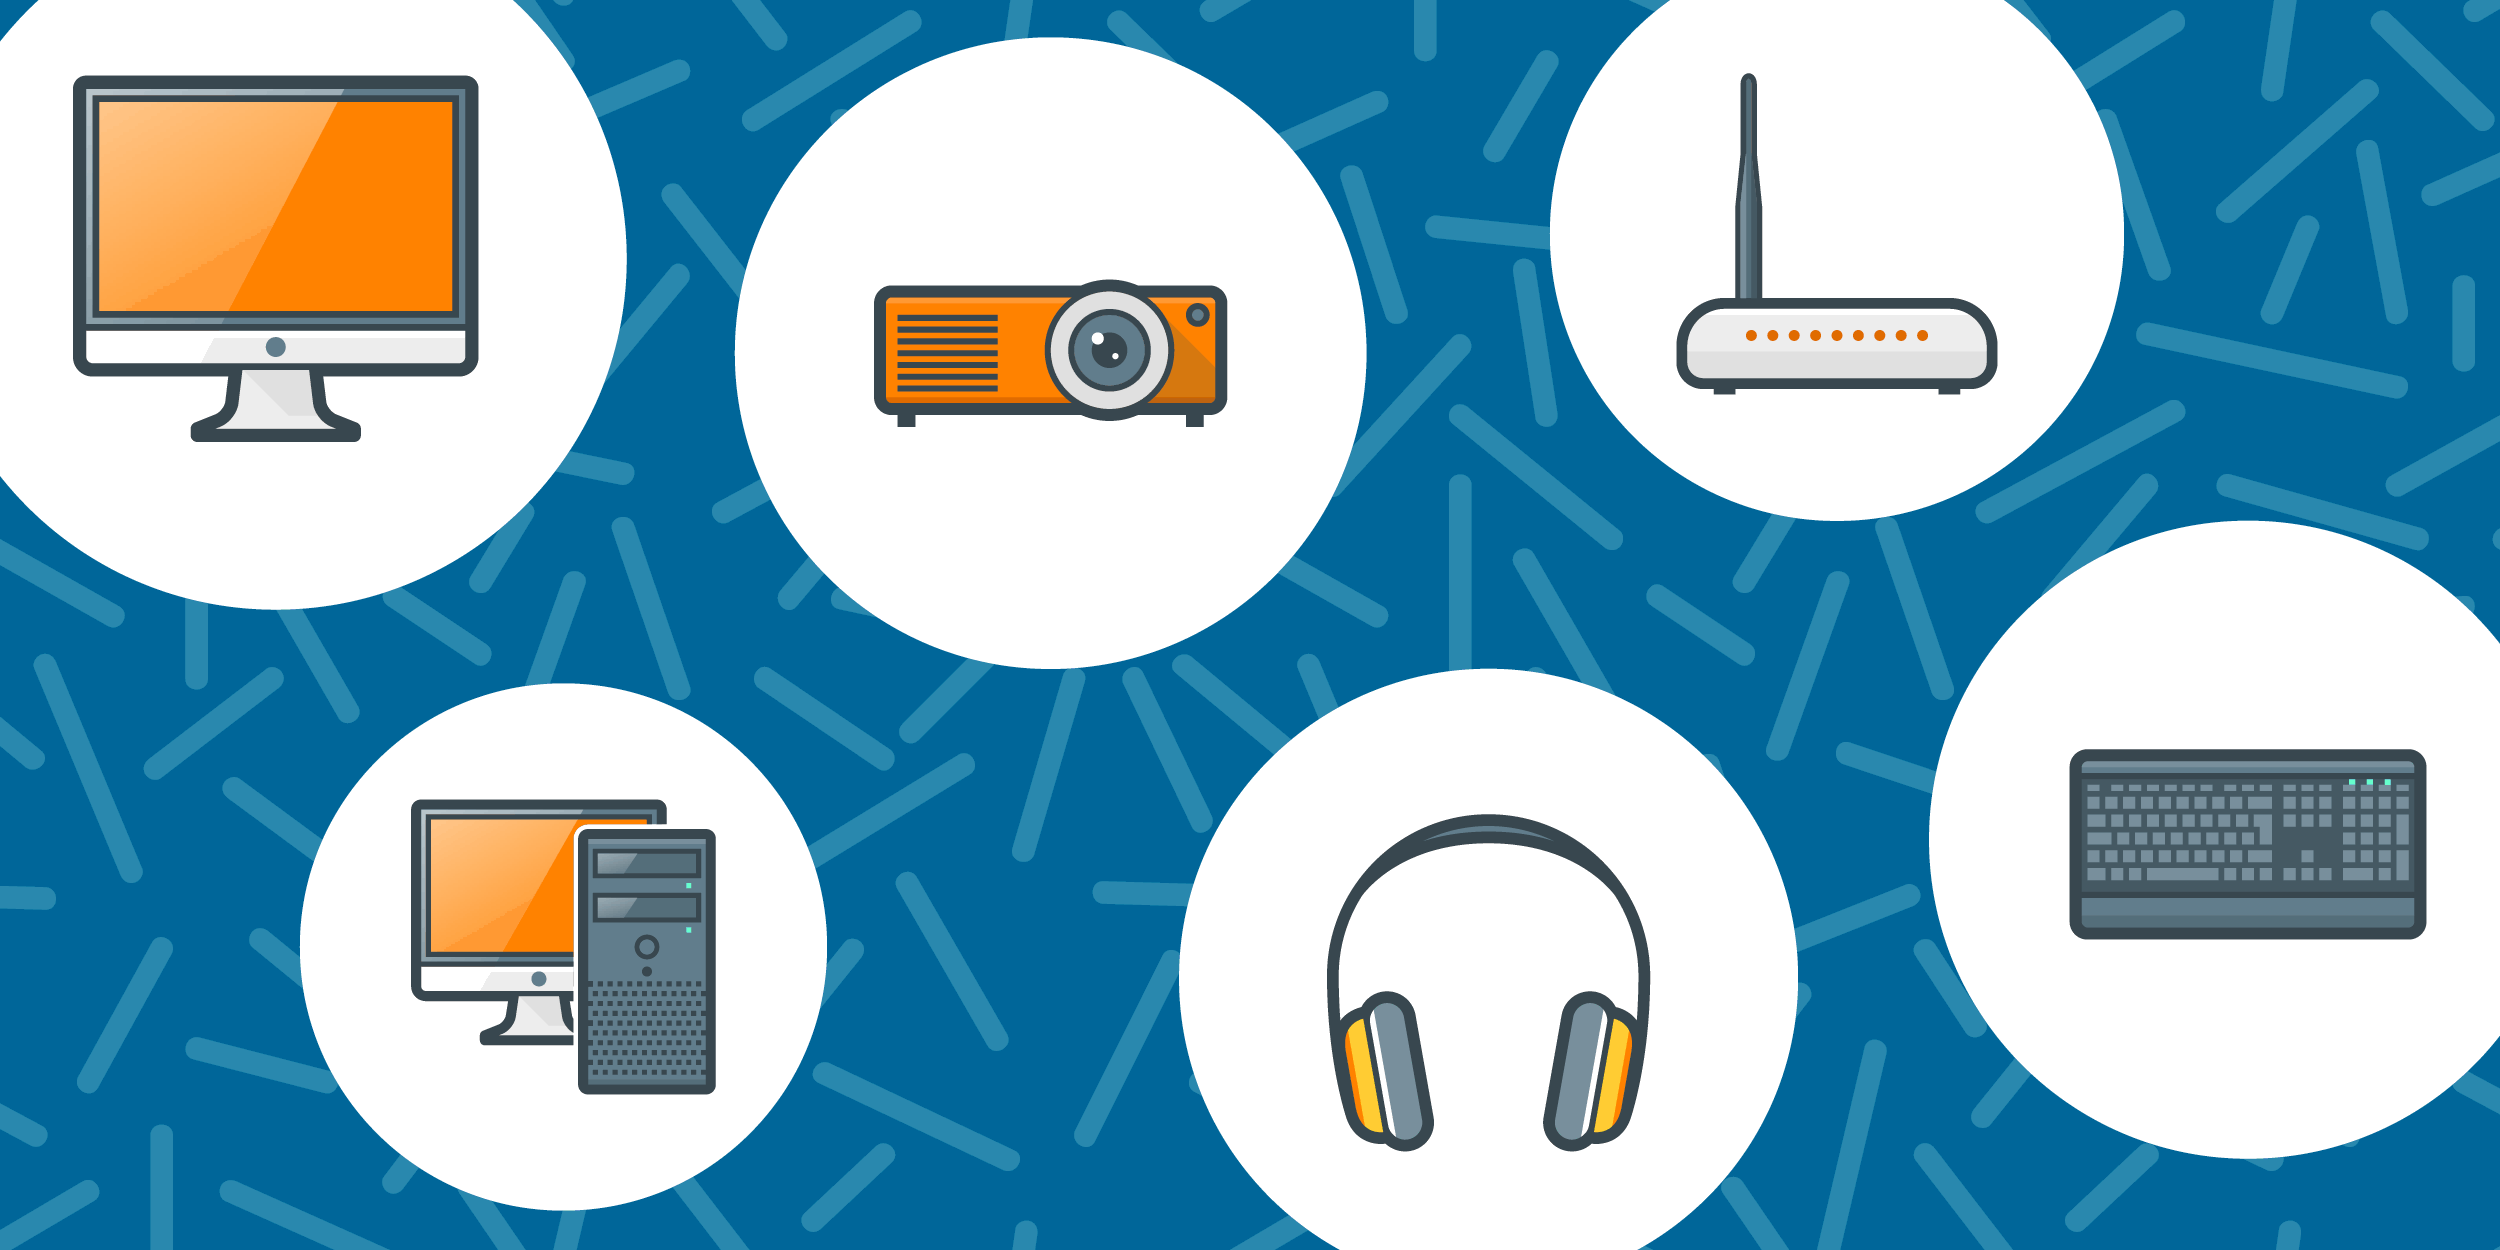 illustration of hardware available for nonprofits such as computer monitors, a projector, headsets, a keyboard, and a router